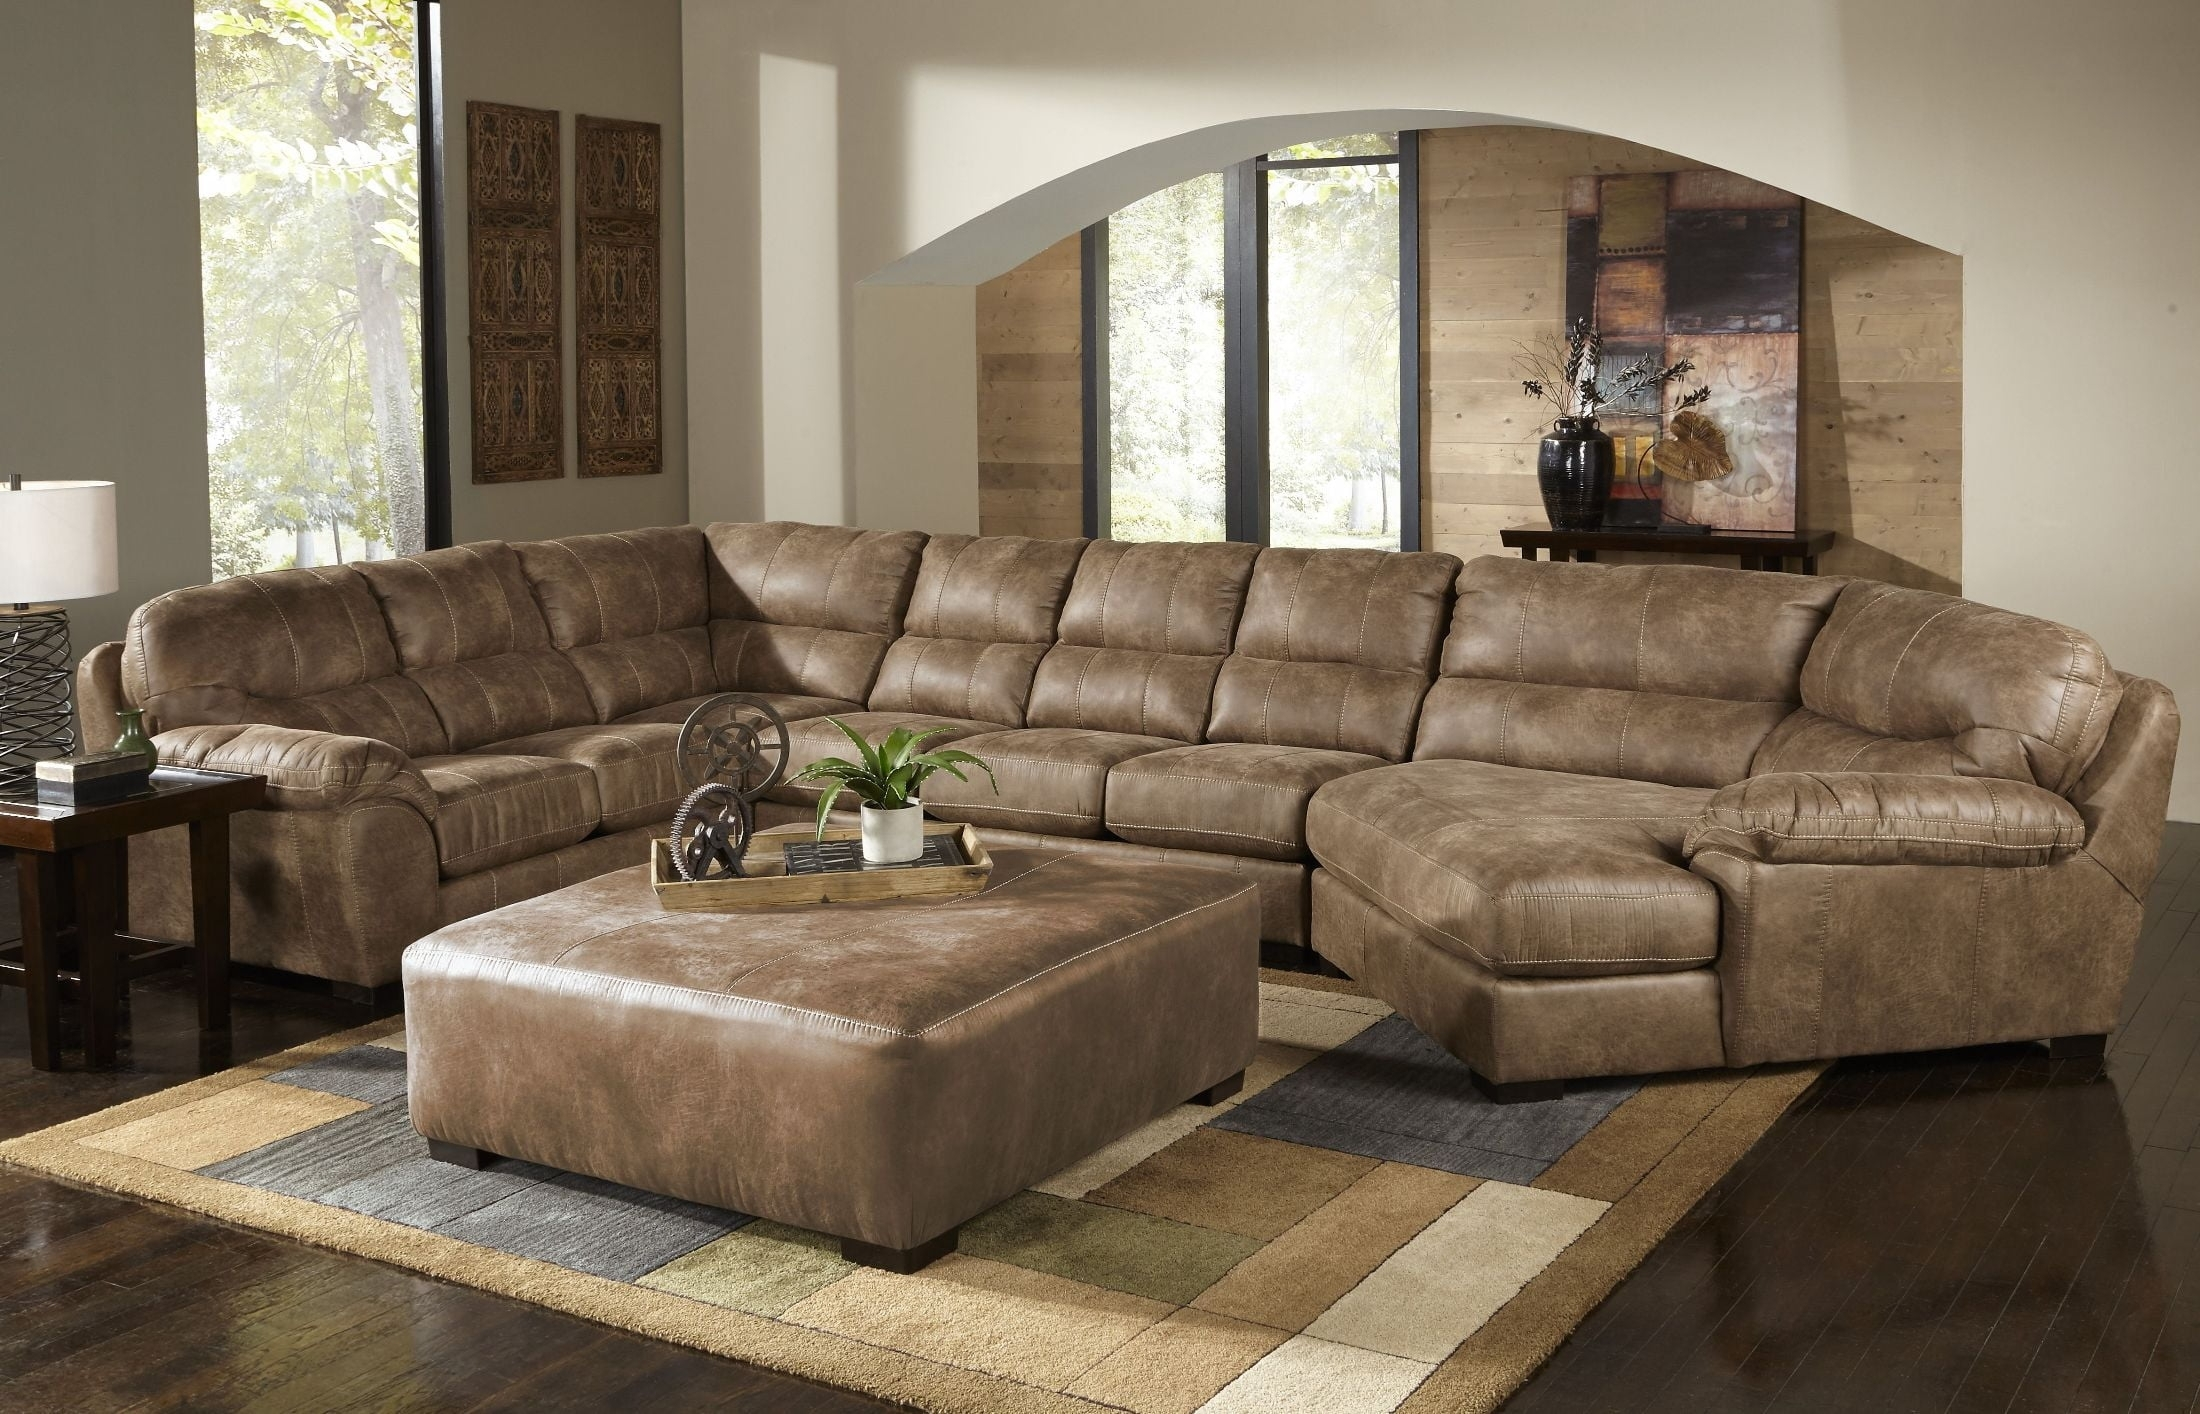 Grant Silt Laf Chaise Sectional, 4453 75 122749302749, Jackson Intended For Avery 2 Piece Sectionals With Laf Armless Chaise (Image 15 of 25)